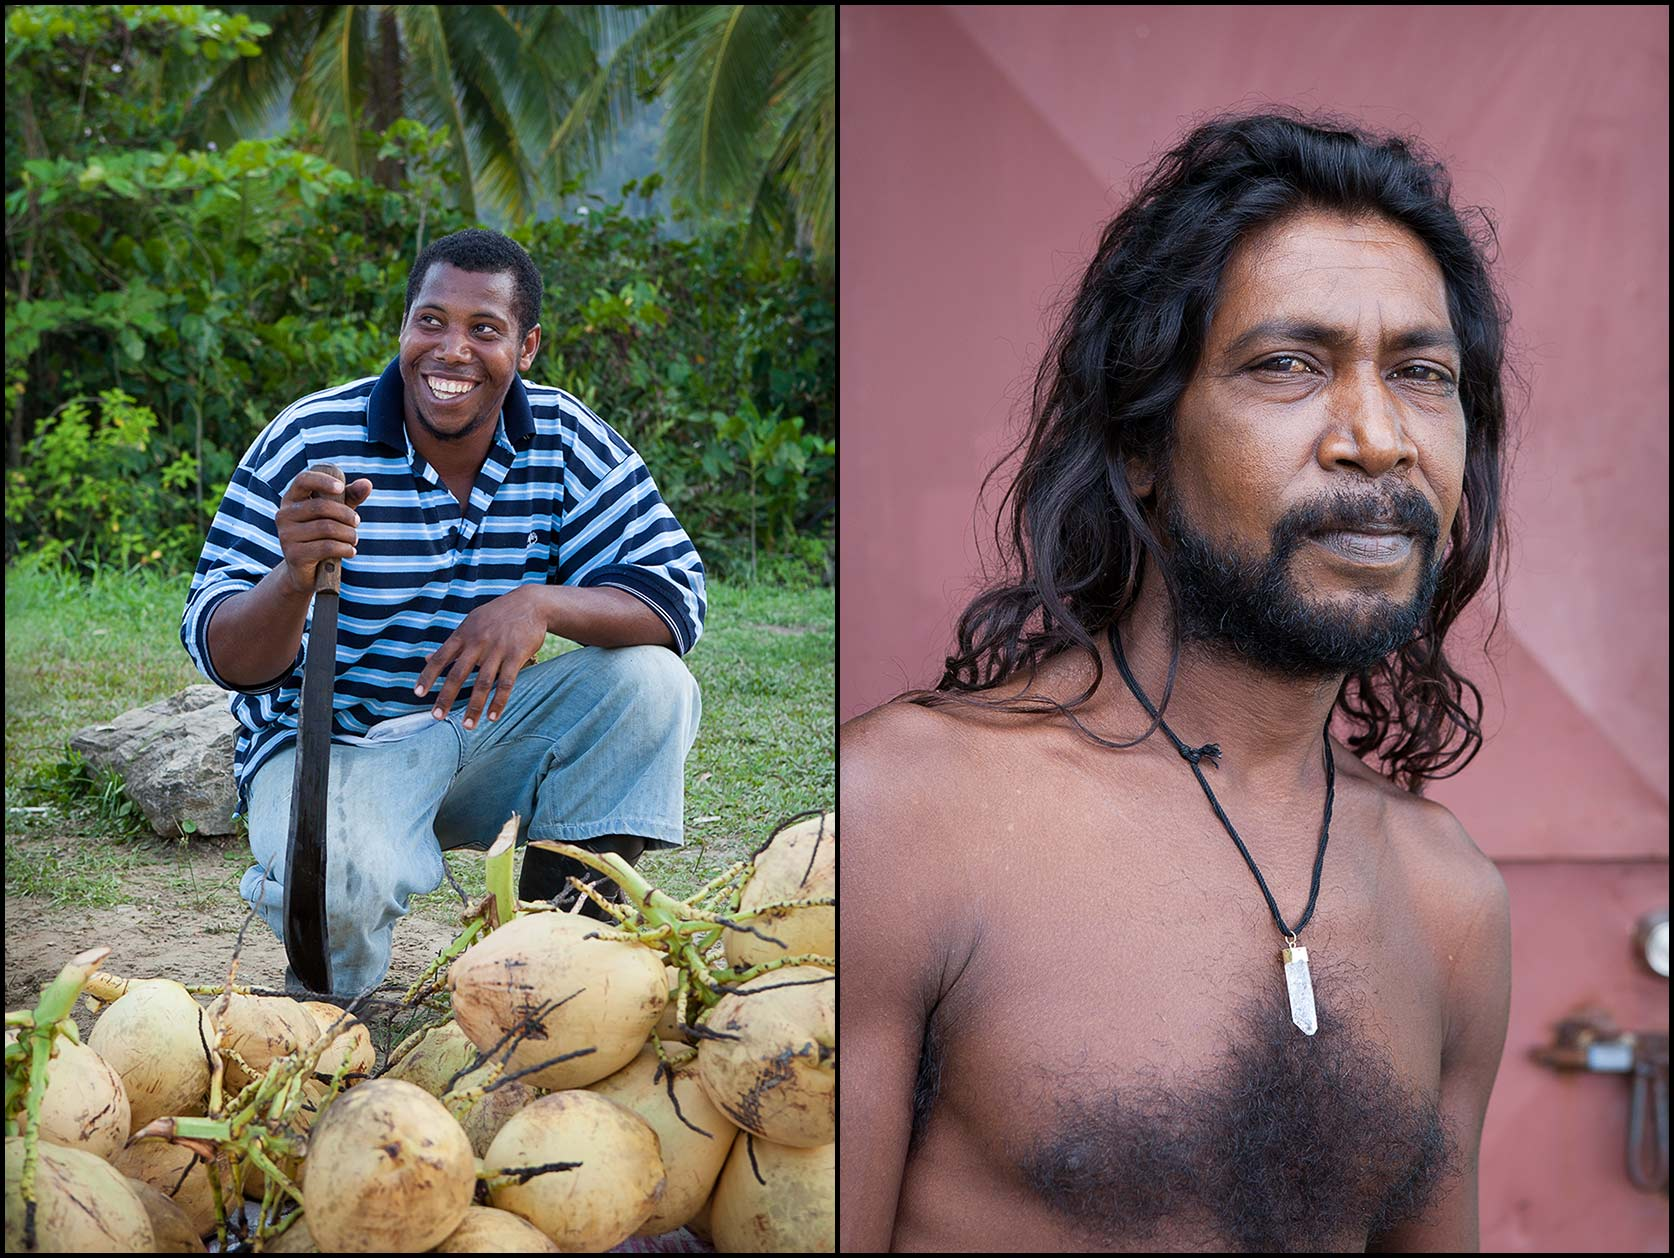 A coconut water vendor kneels with machete in Trinidad (L), A portrait of a shirtless man with long hair in Trinidad (R).